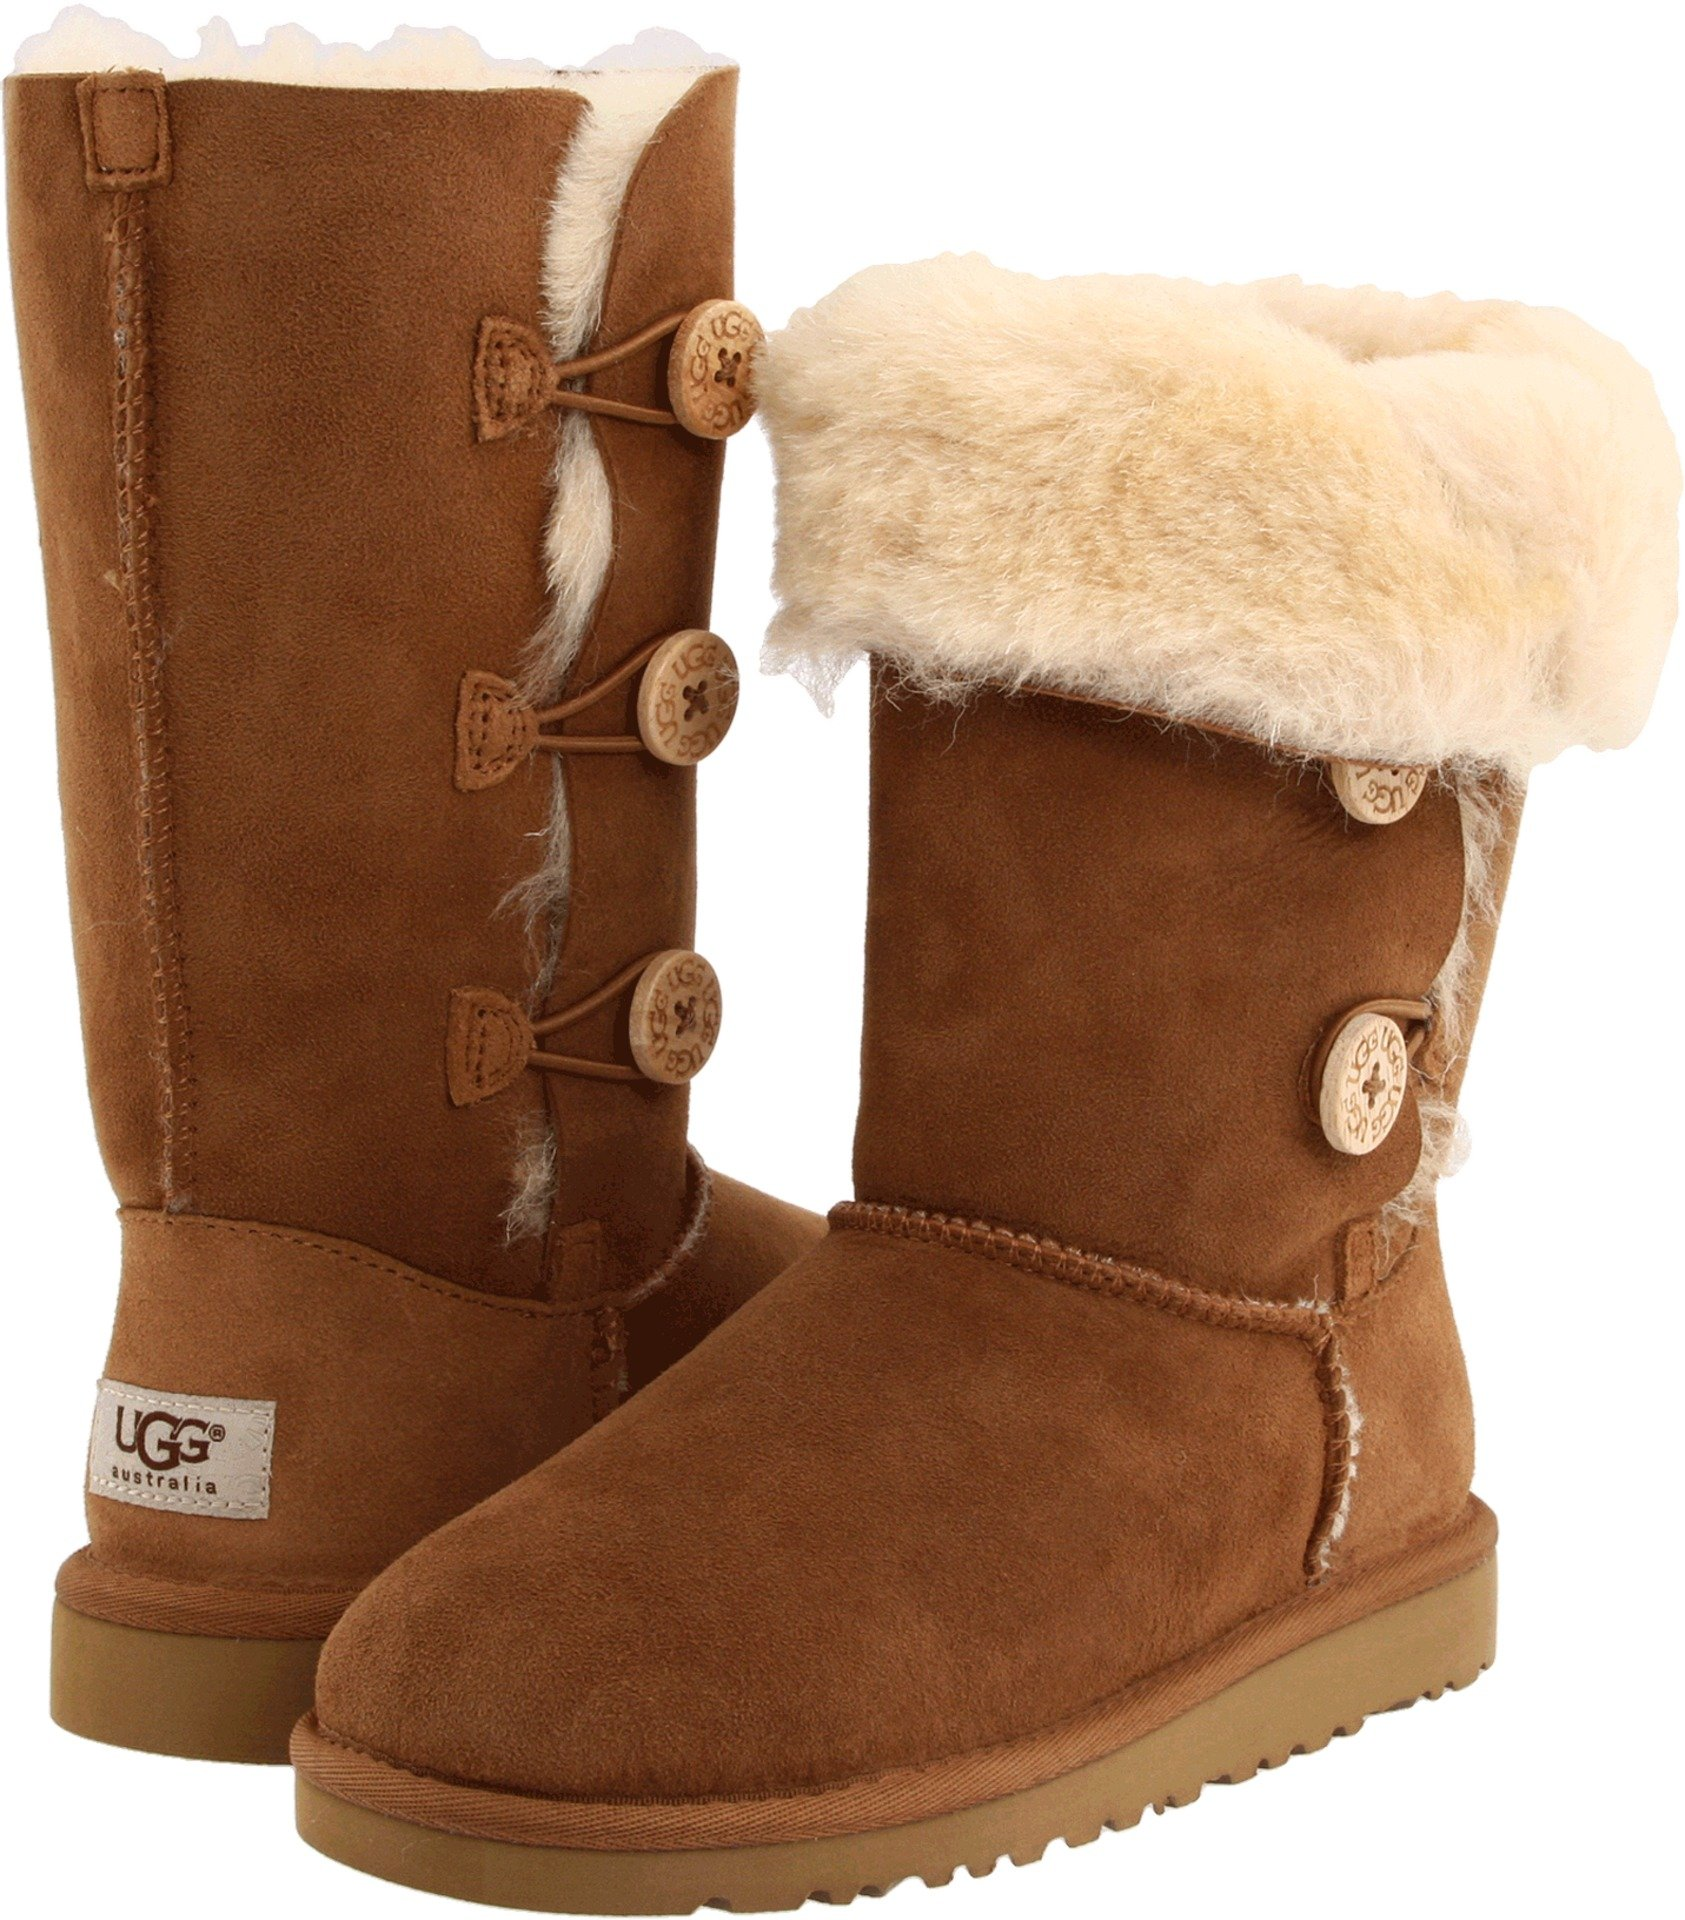 UGG Australia Girls' Bailey Button Triplet Sheepskin Fashion Boot Chestnut 6 M US